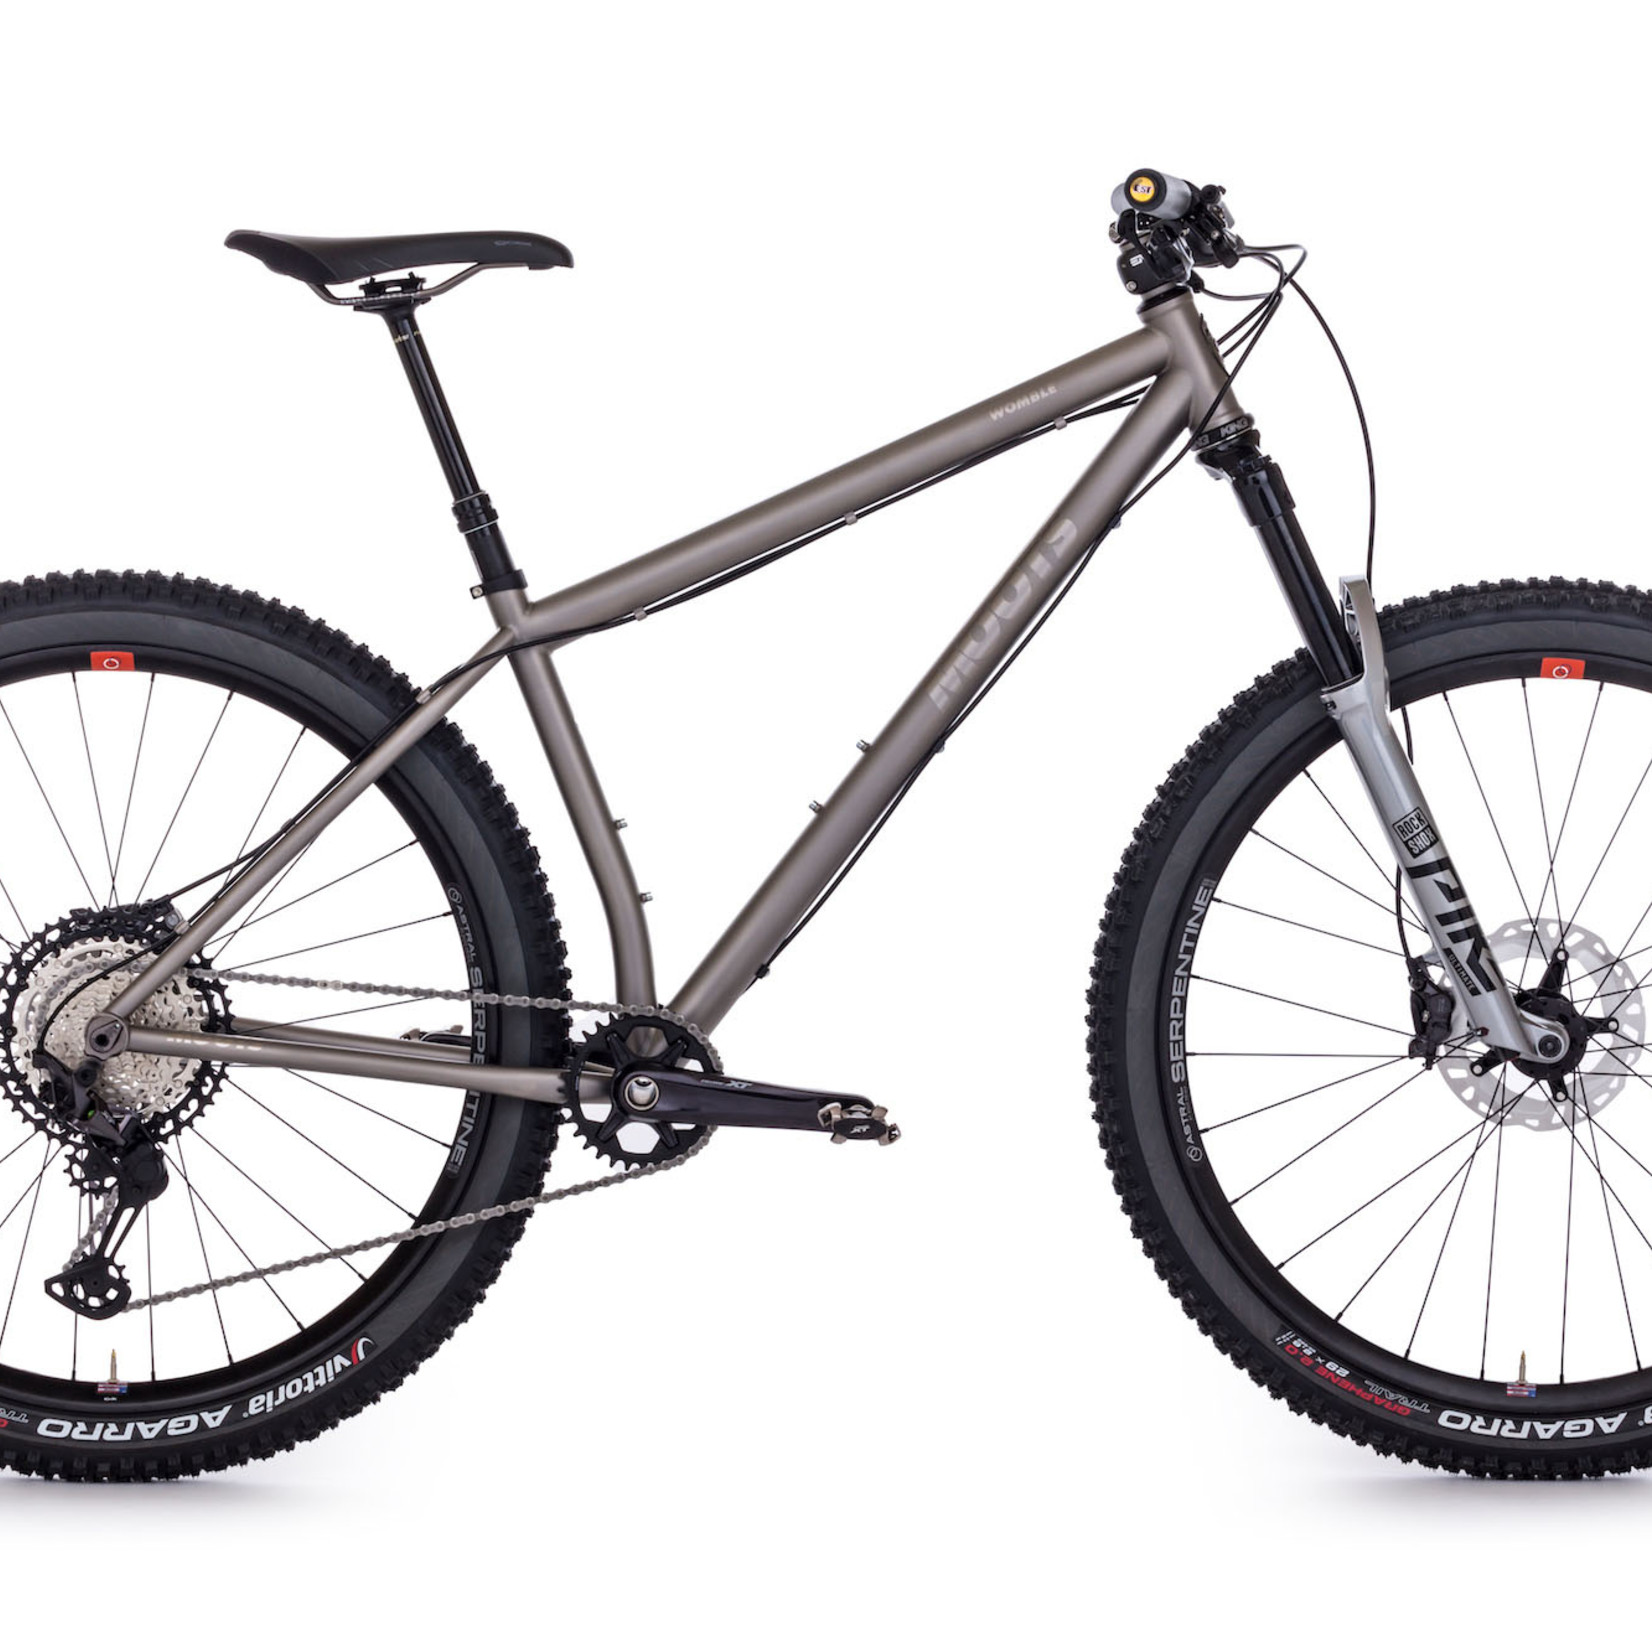 Moots Moots Womble Large Brushed w/XT M8100, Astral Serpentine